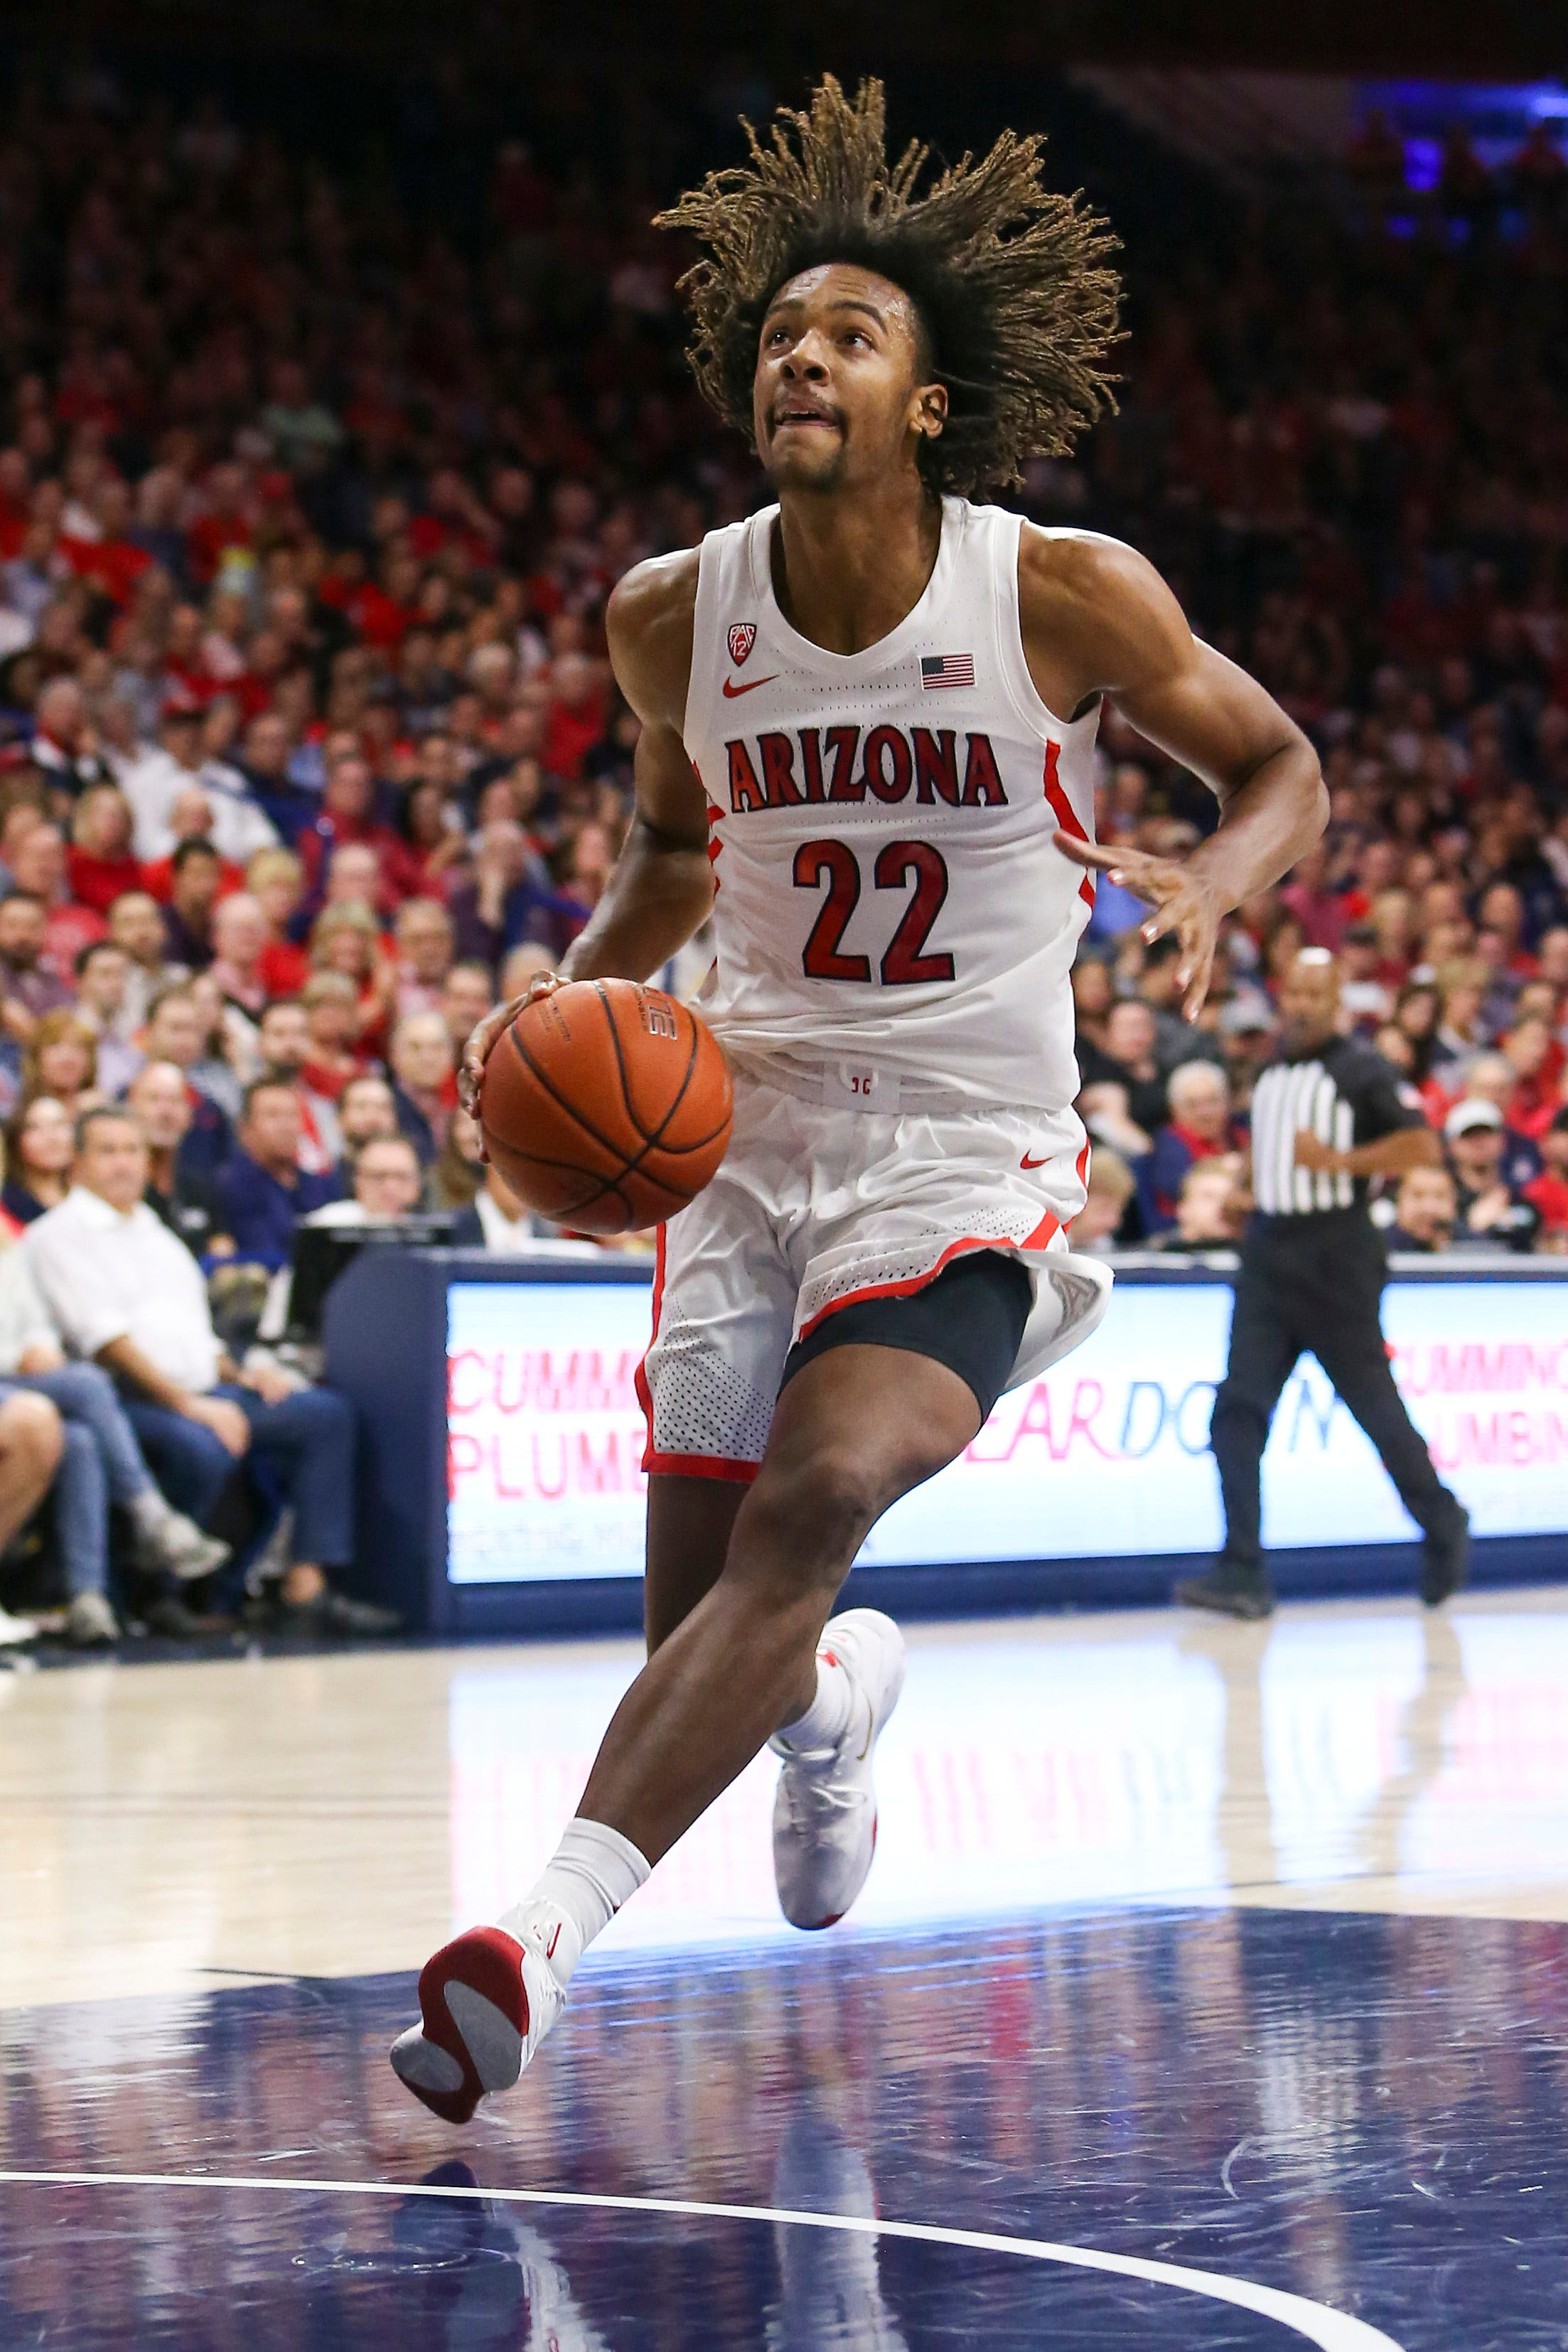 Zeke Nnajis personality could help Arizona Wildcats star...